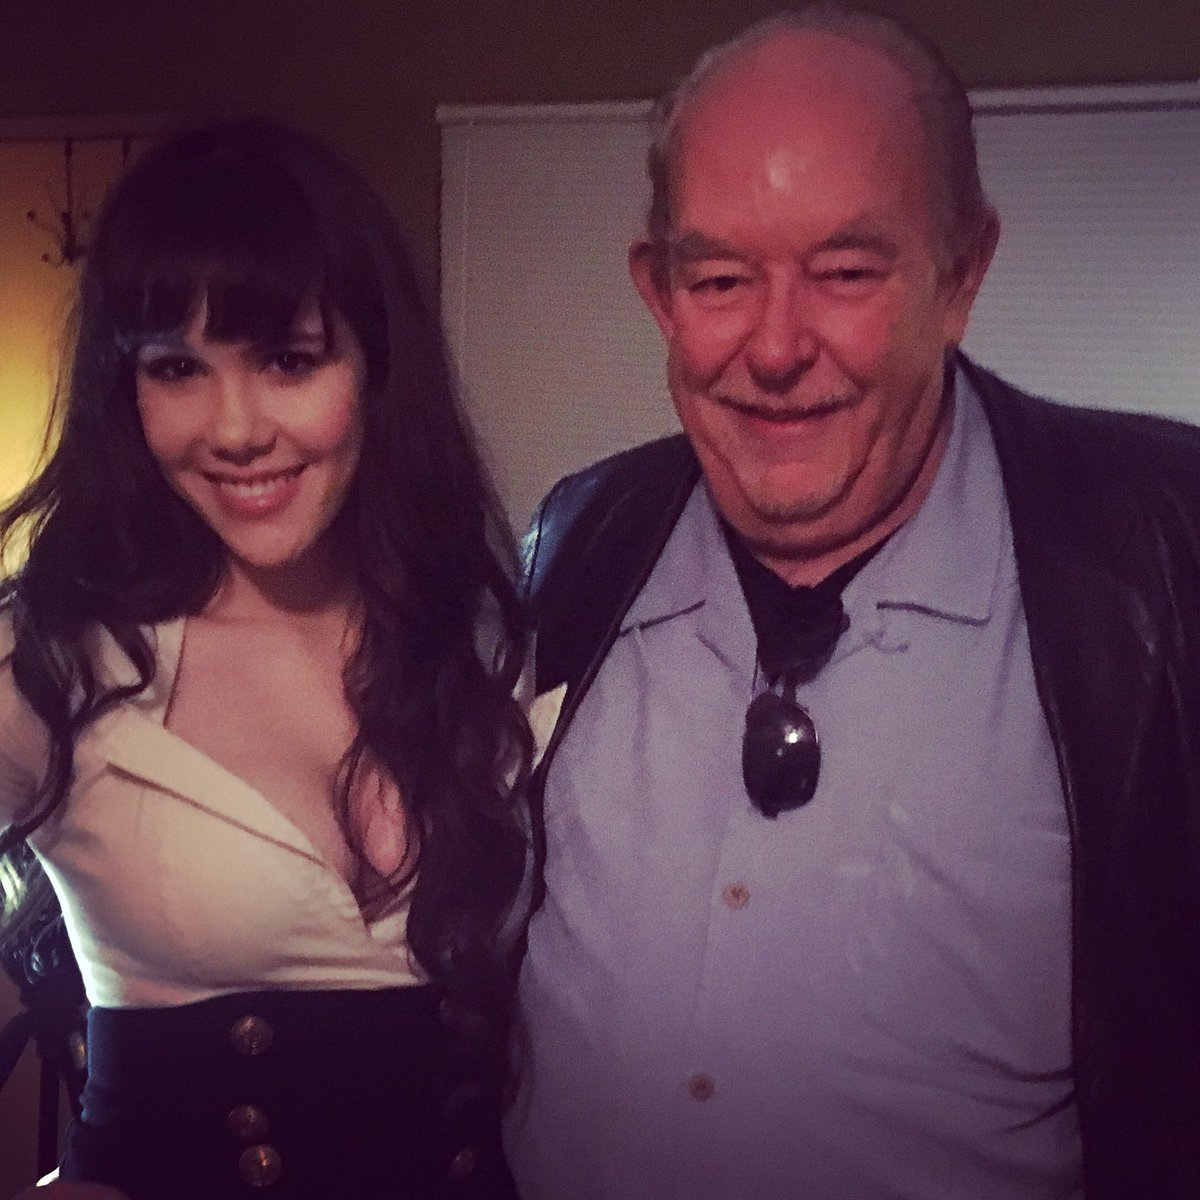 Claire Sinclair  - Thank you <a twitter @ClaireSinclair_ clairbnb